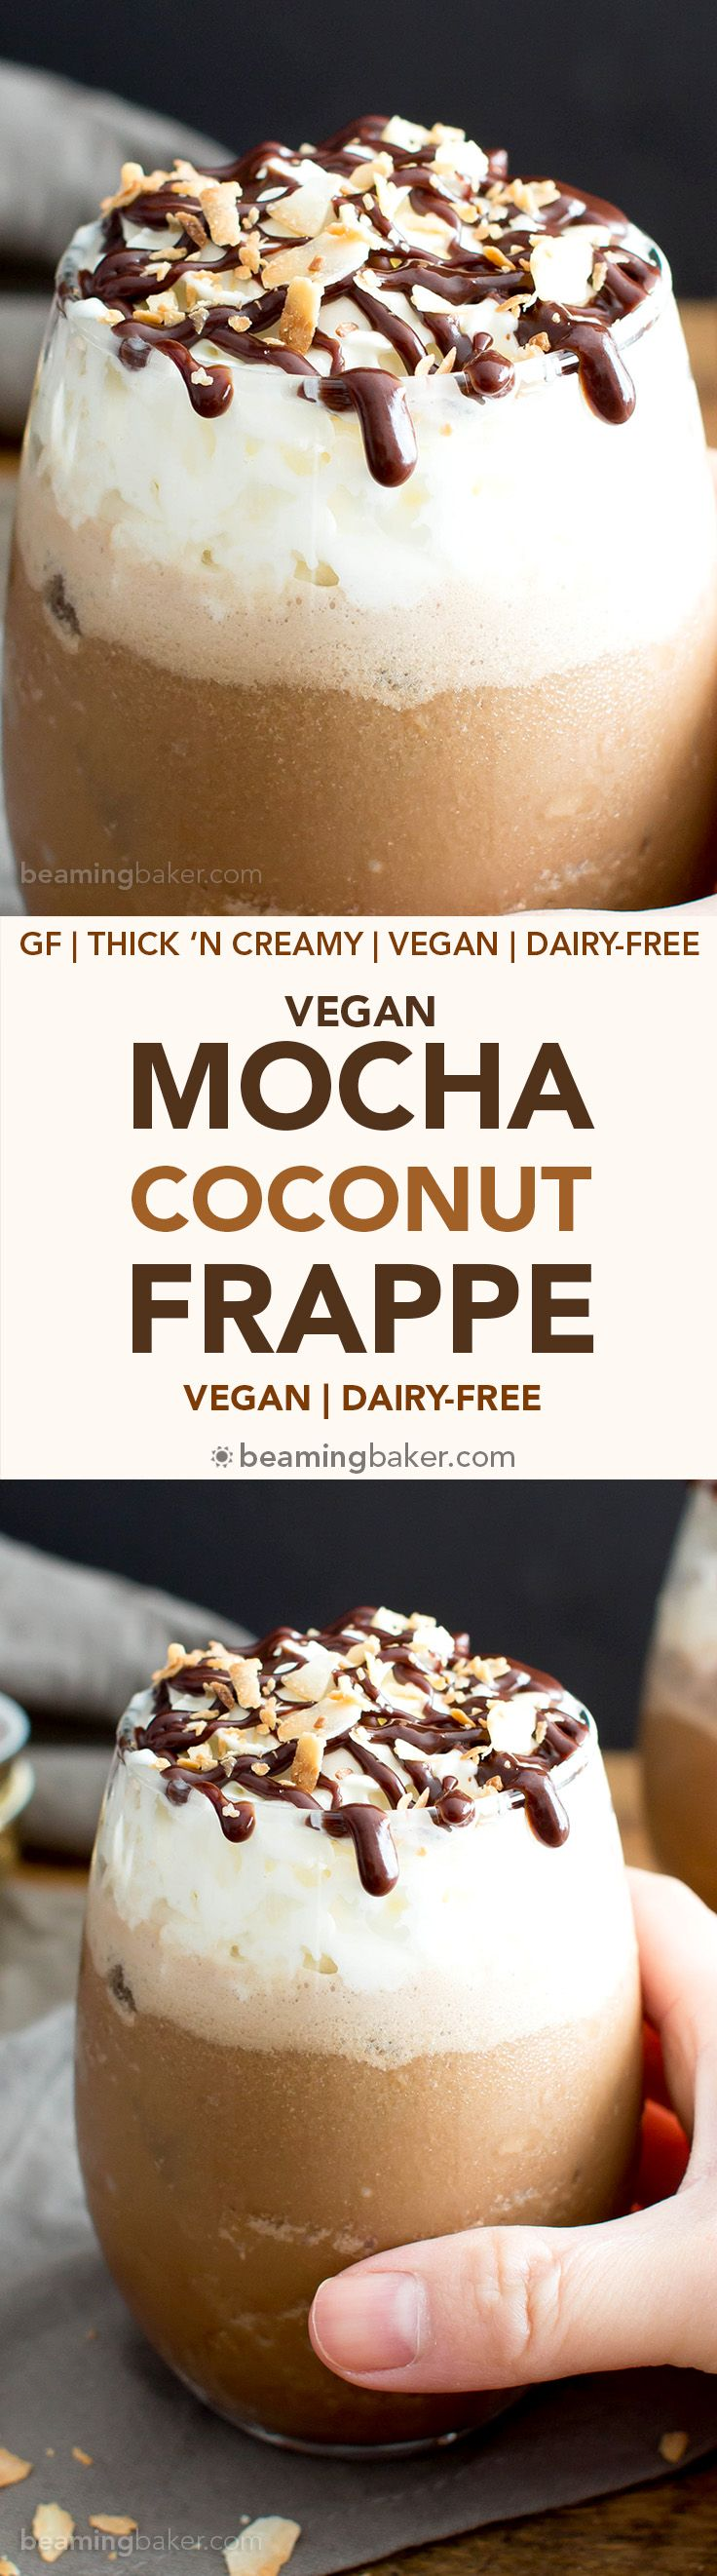 Mocha Coconut Frappe (V, GF): a quick and easy recipe for the tastiest, creamiest homemade frappe you've ever had. #Vegan #GlutenFree #DairyFree #Coffee #Frappuccino #Amoretti #AD   Recipe by BeamingBaker.com